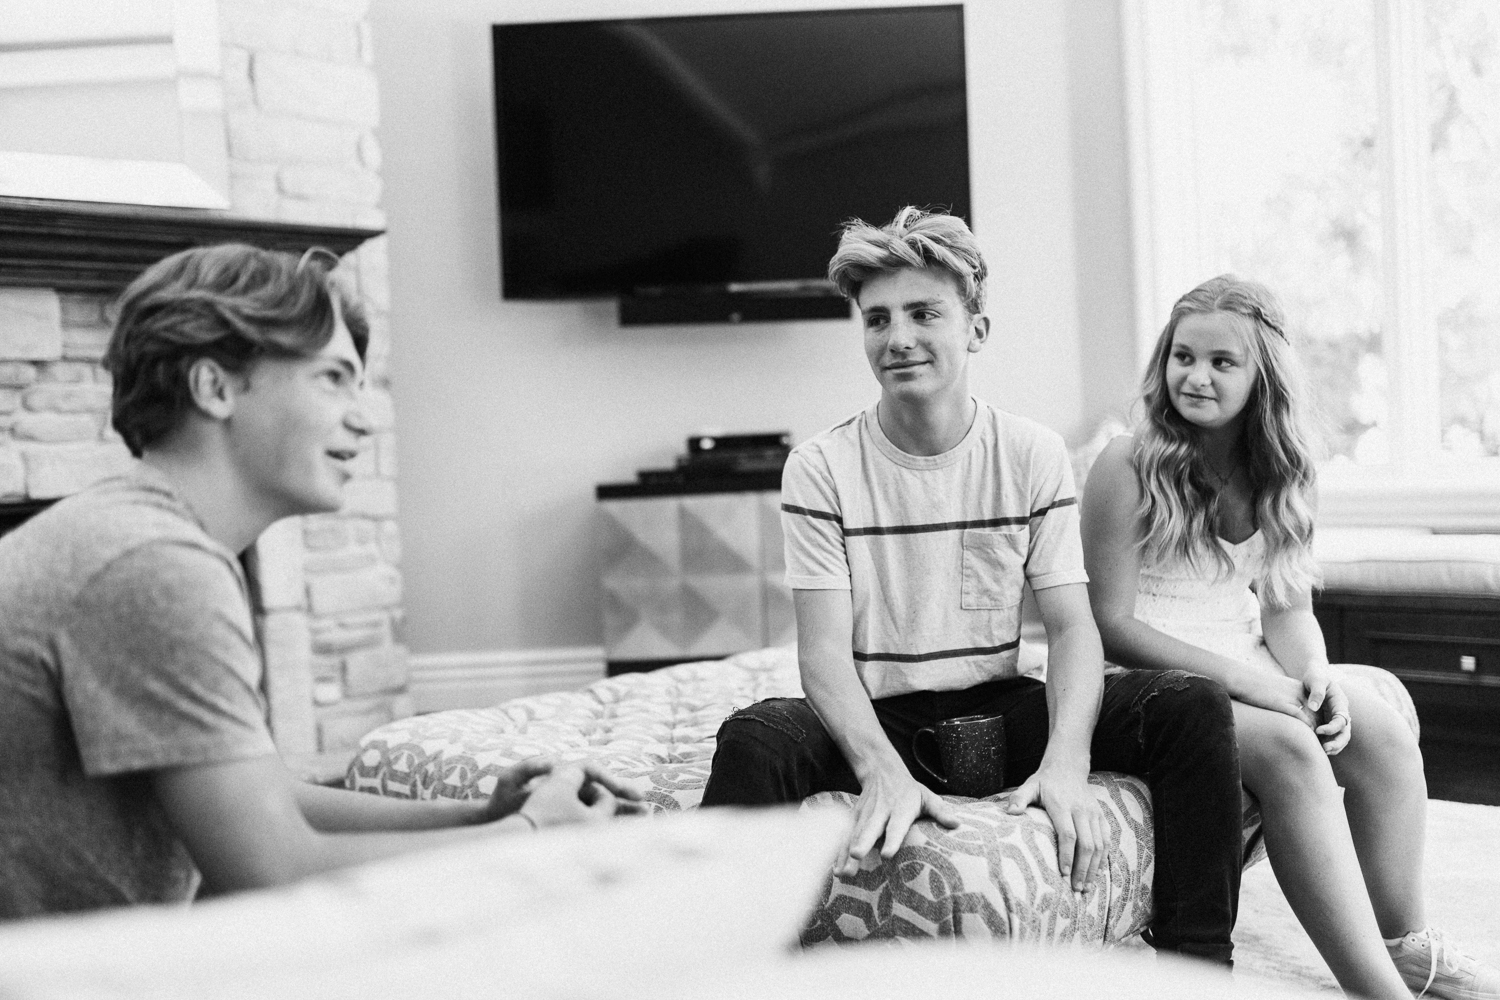 candid-black-and-white-photo-of-siblings-conversating-in-living-room-during-in-home-session-with-jen-fairchild-photography-in-salt-lake-city-ut